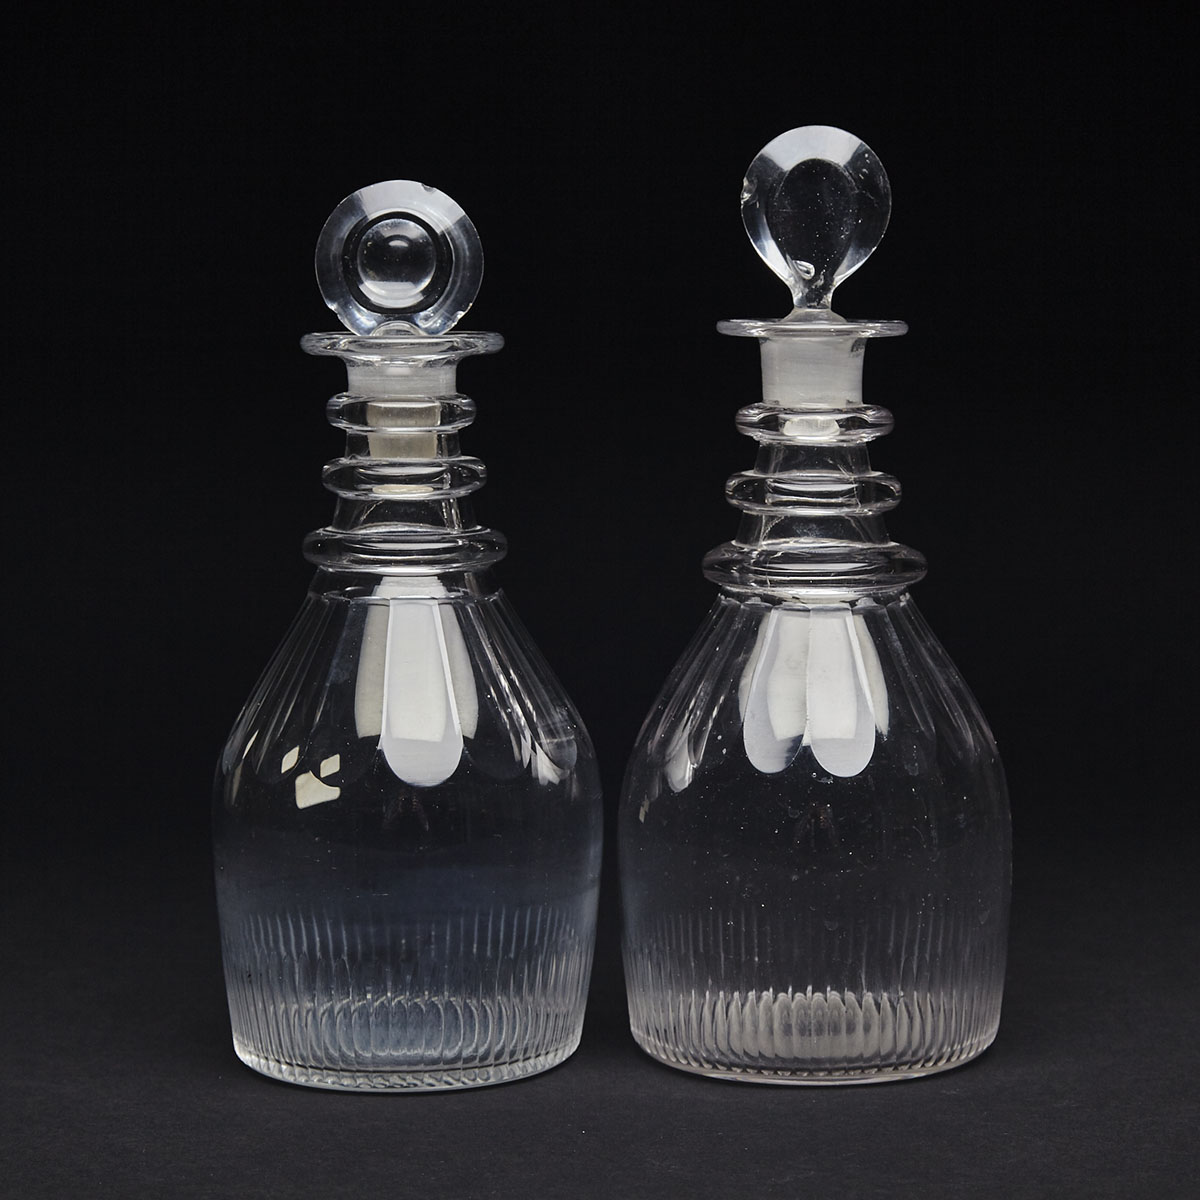 Pair of English Cut Glass Decanters, c.1820